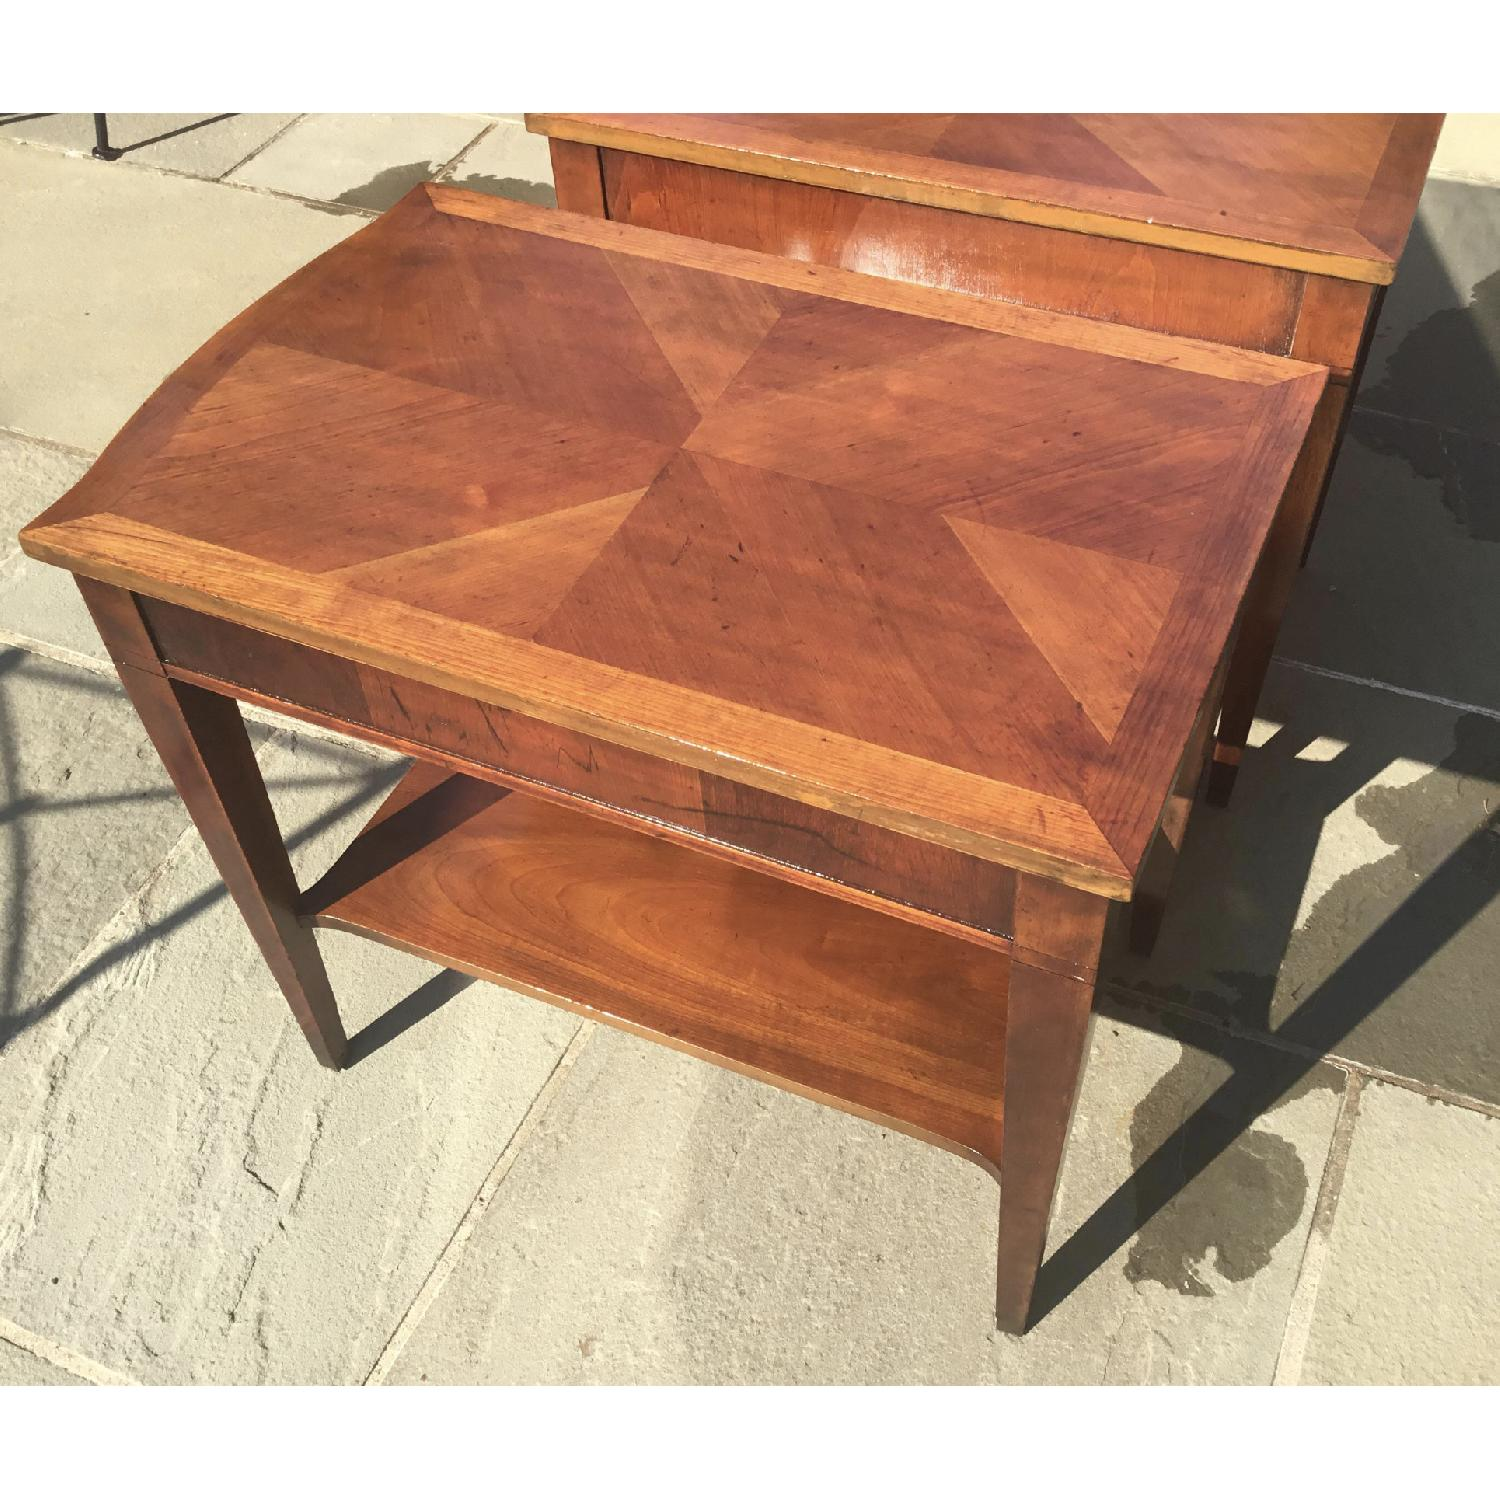 Midmod White Furniture Co. Parquet Top Walnut Side Tables - image-3